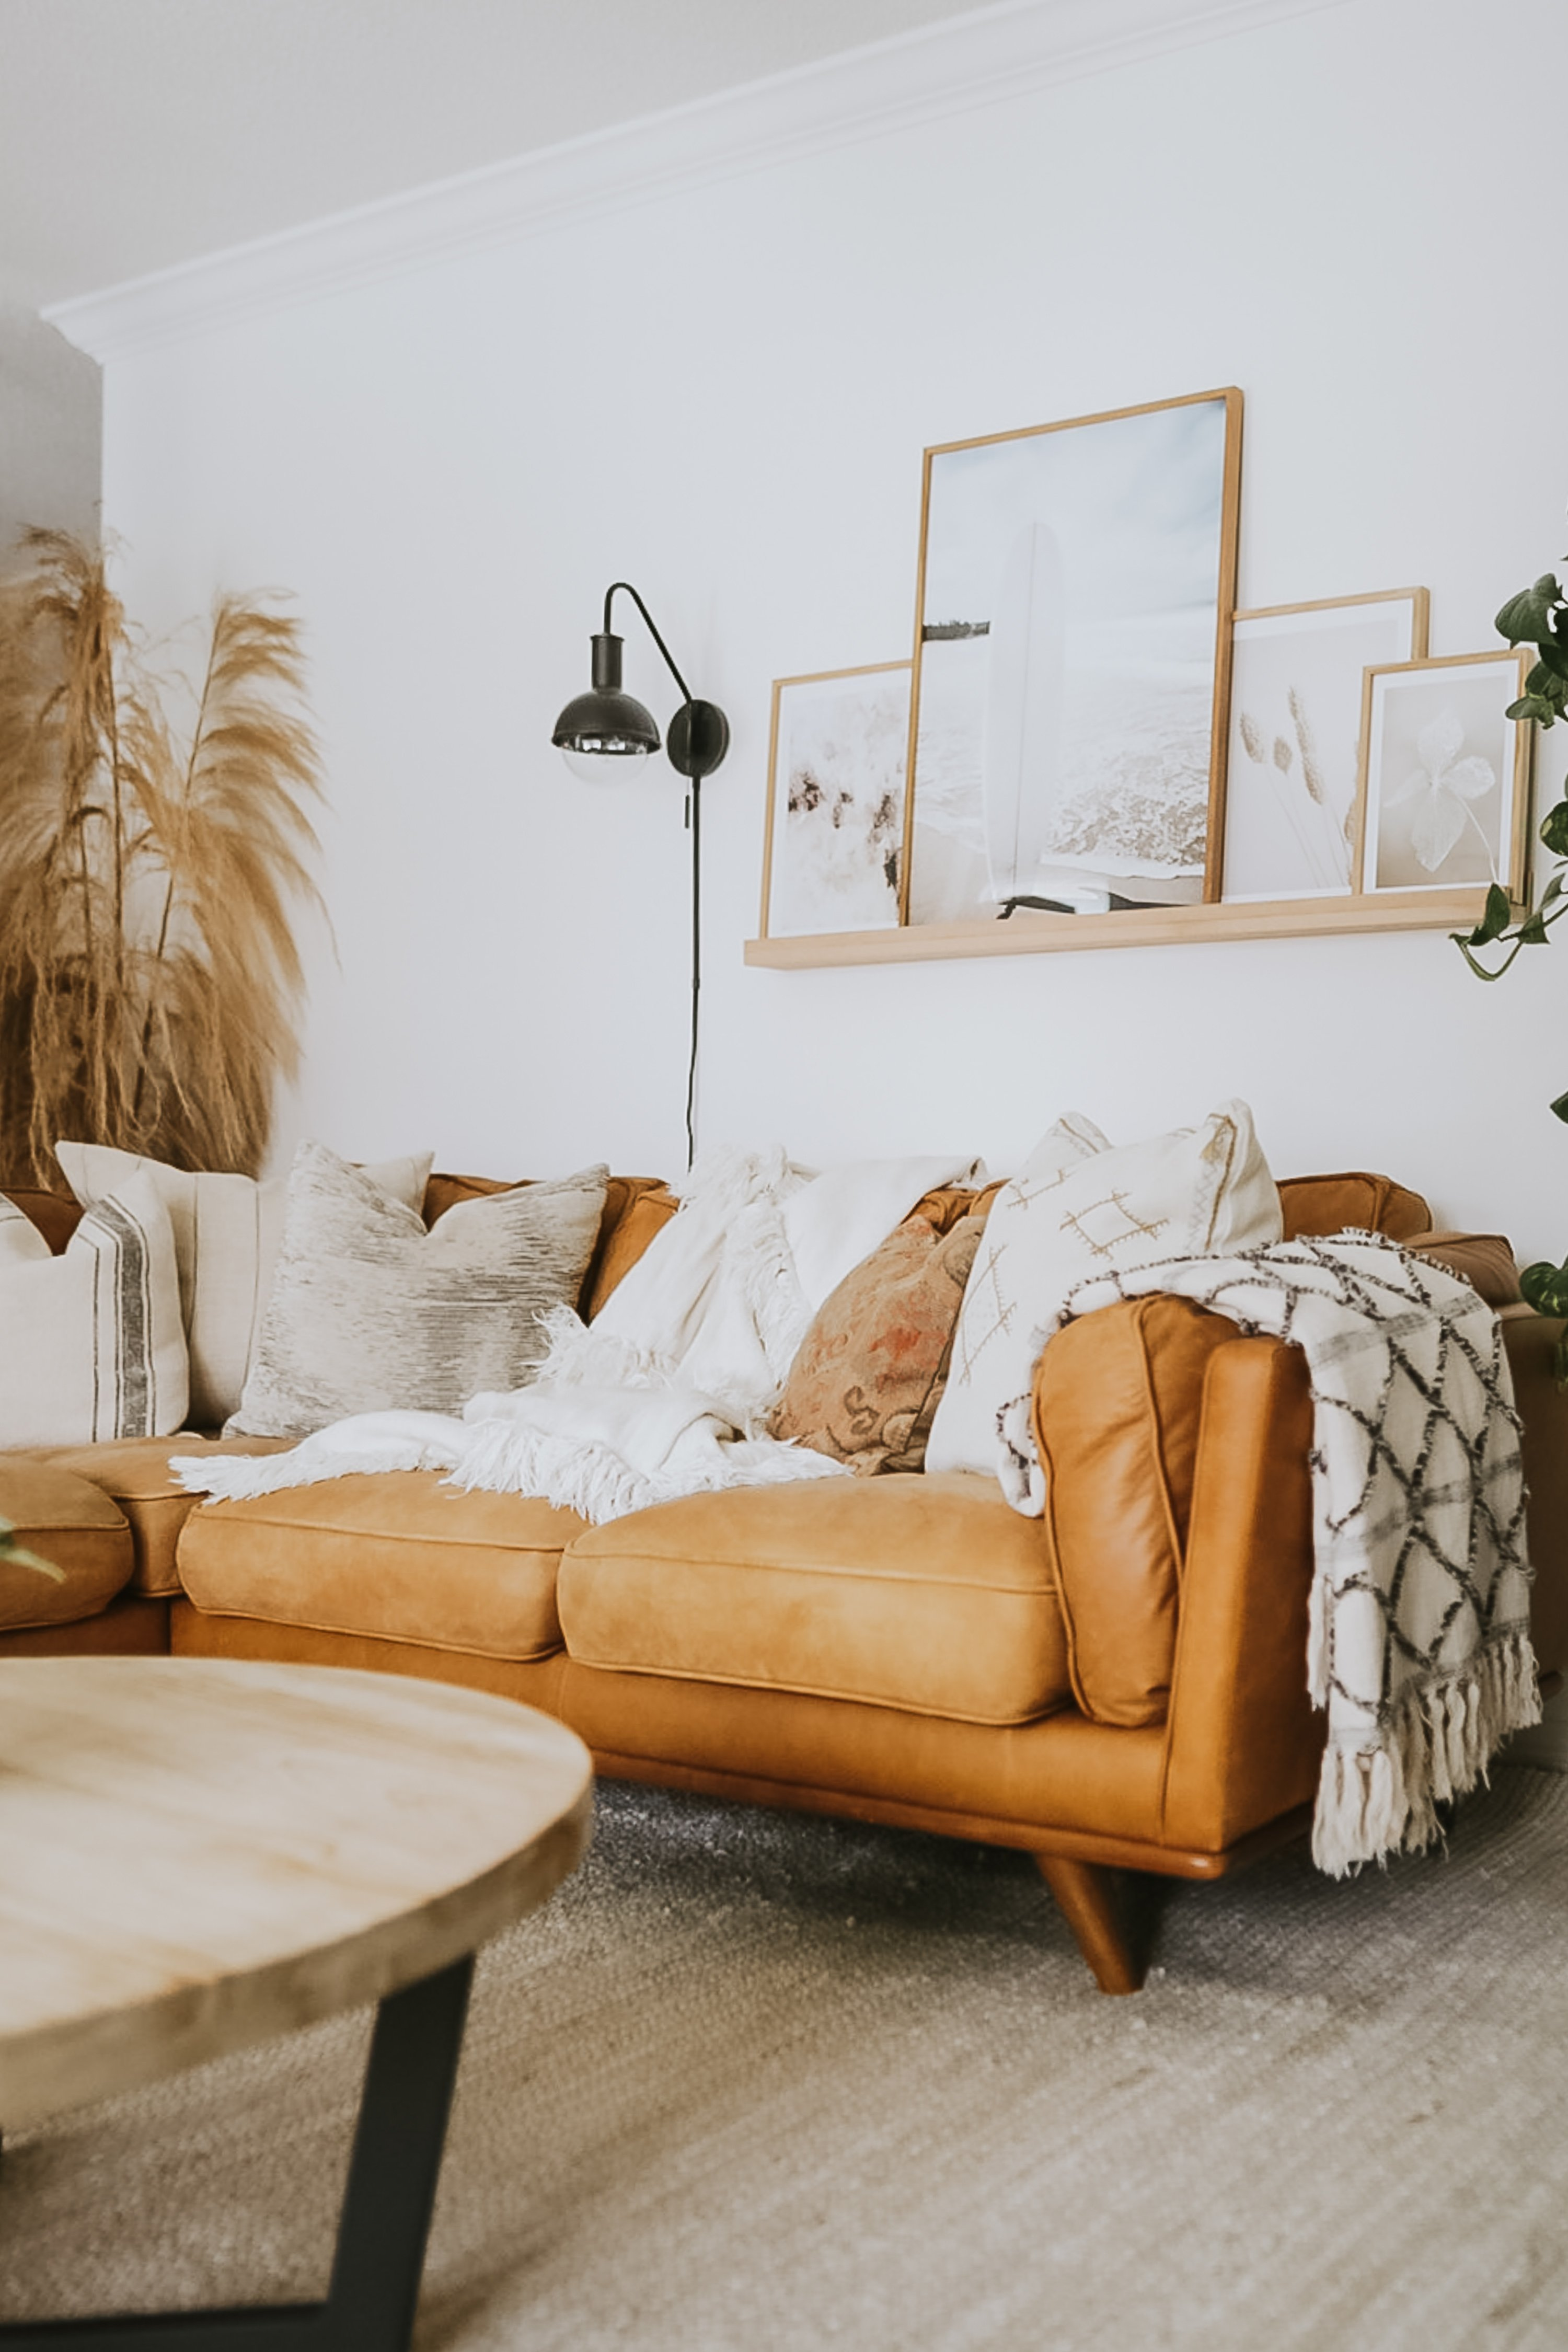 Our Modern Bohemian Rental [ Before and After ] How to transform a space without demolition. A little paint and imagination goes so far in making a space your own.